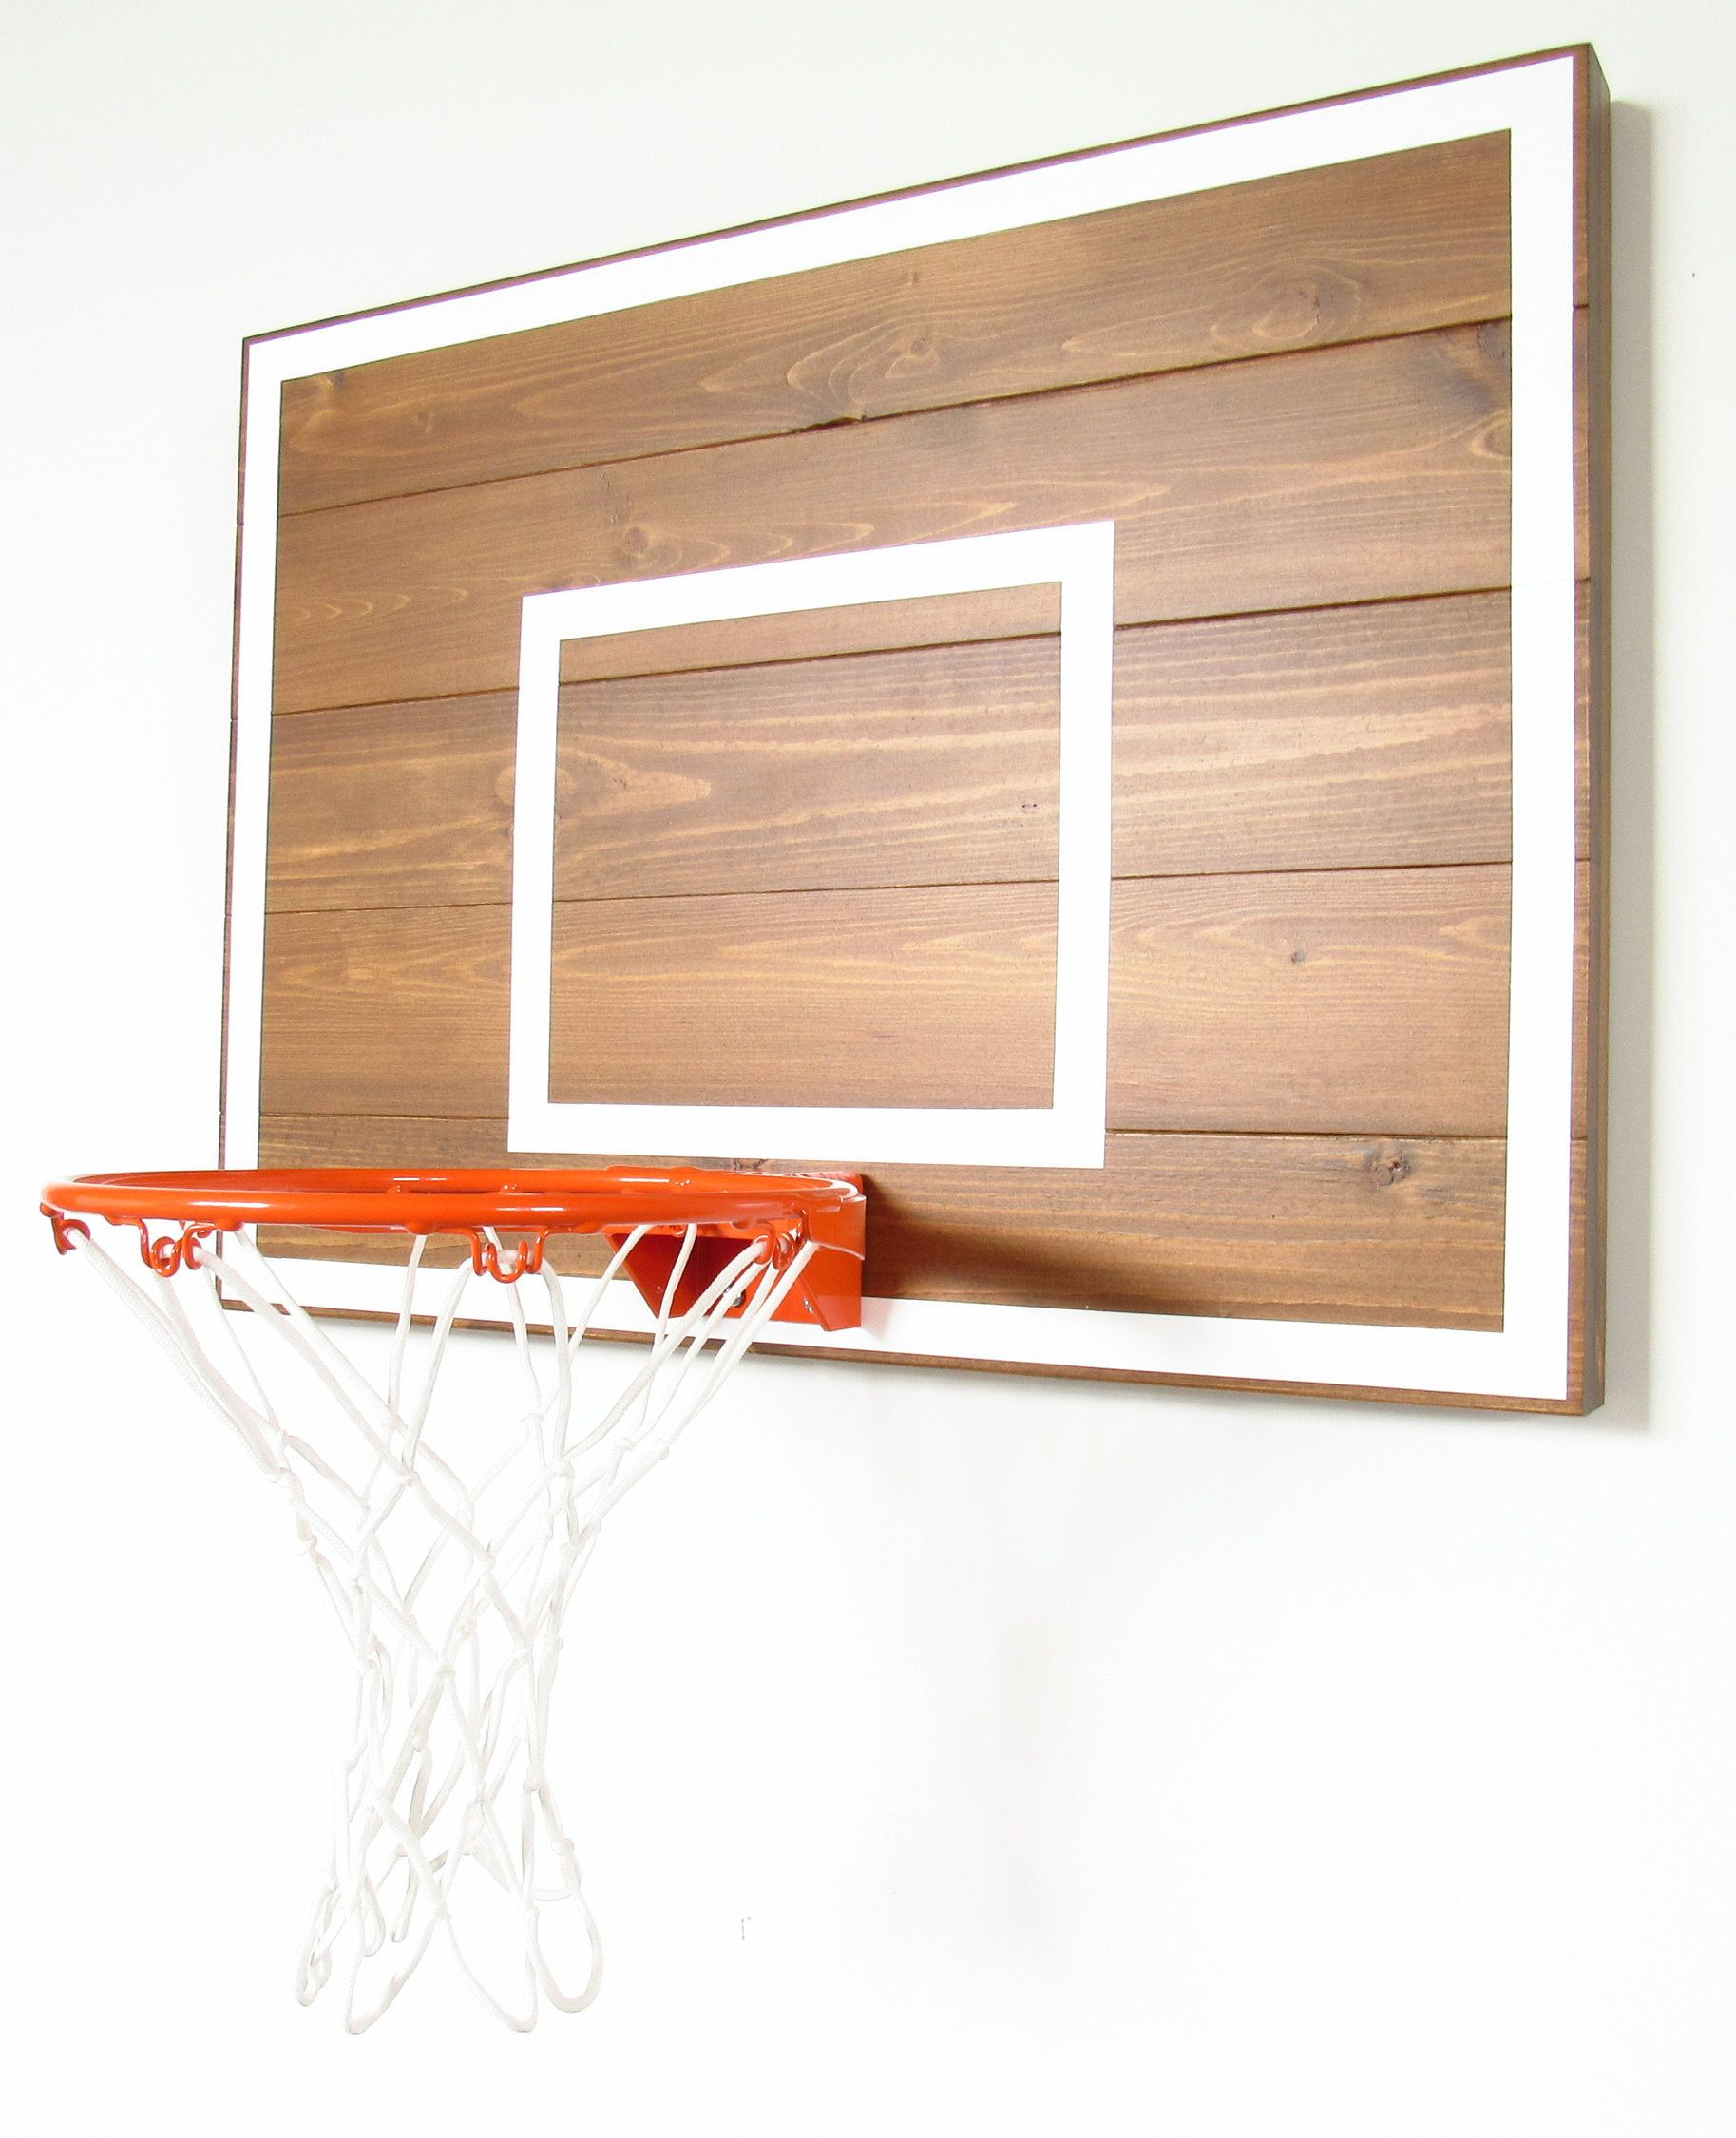 Our Original Brown Basketball Hoop With White Lines Will Always Be A Classic Mini Basketball Hoop Gam Indoor Basketball Hoop Basketball Hoop Indoor Basketball